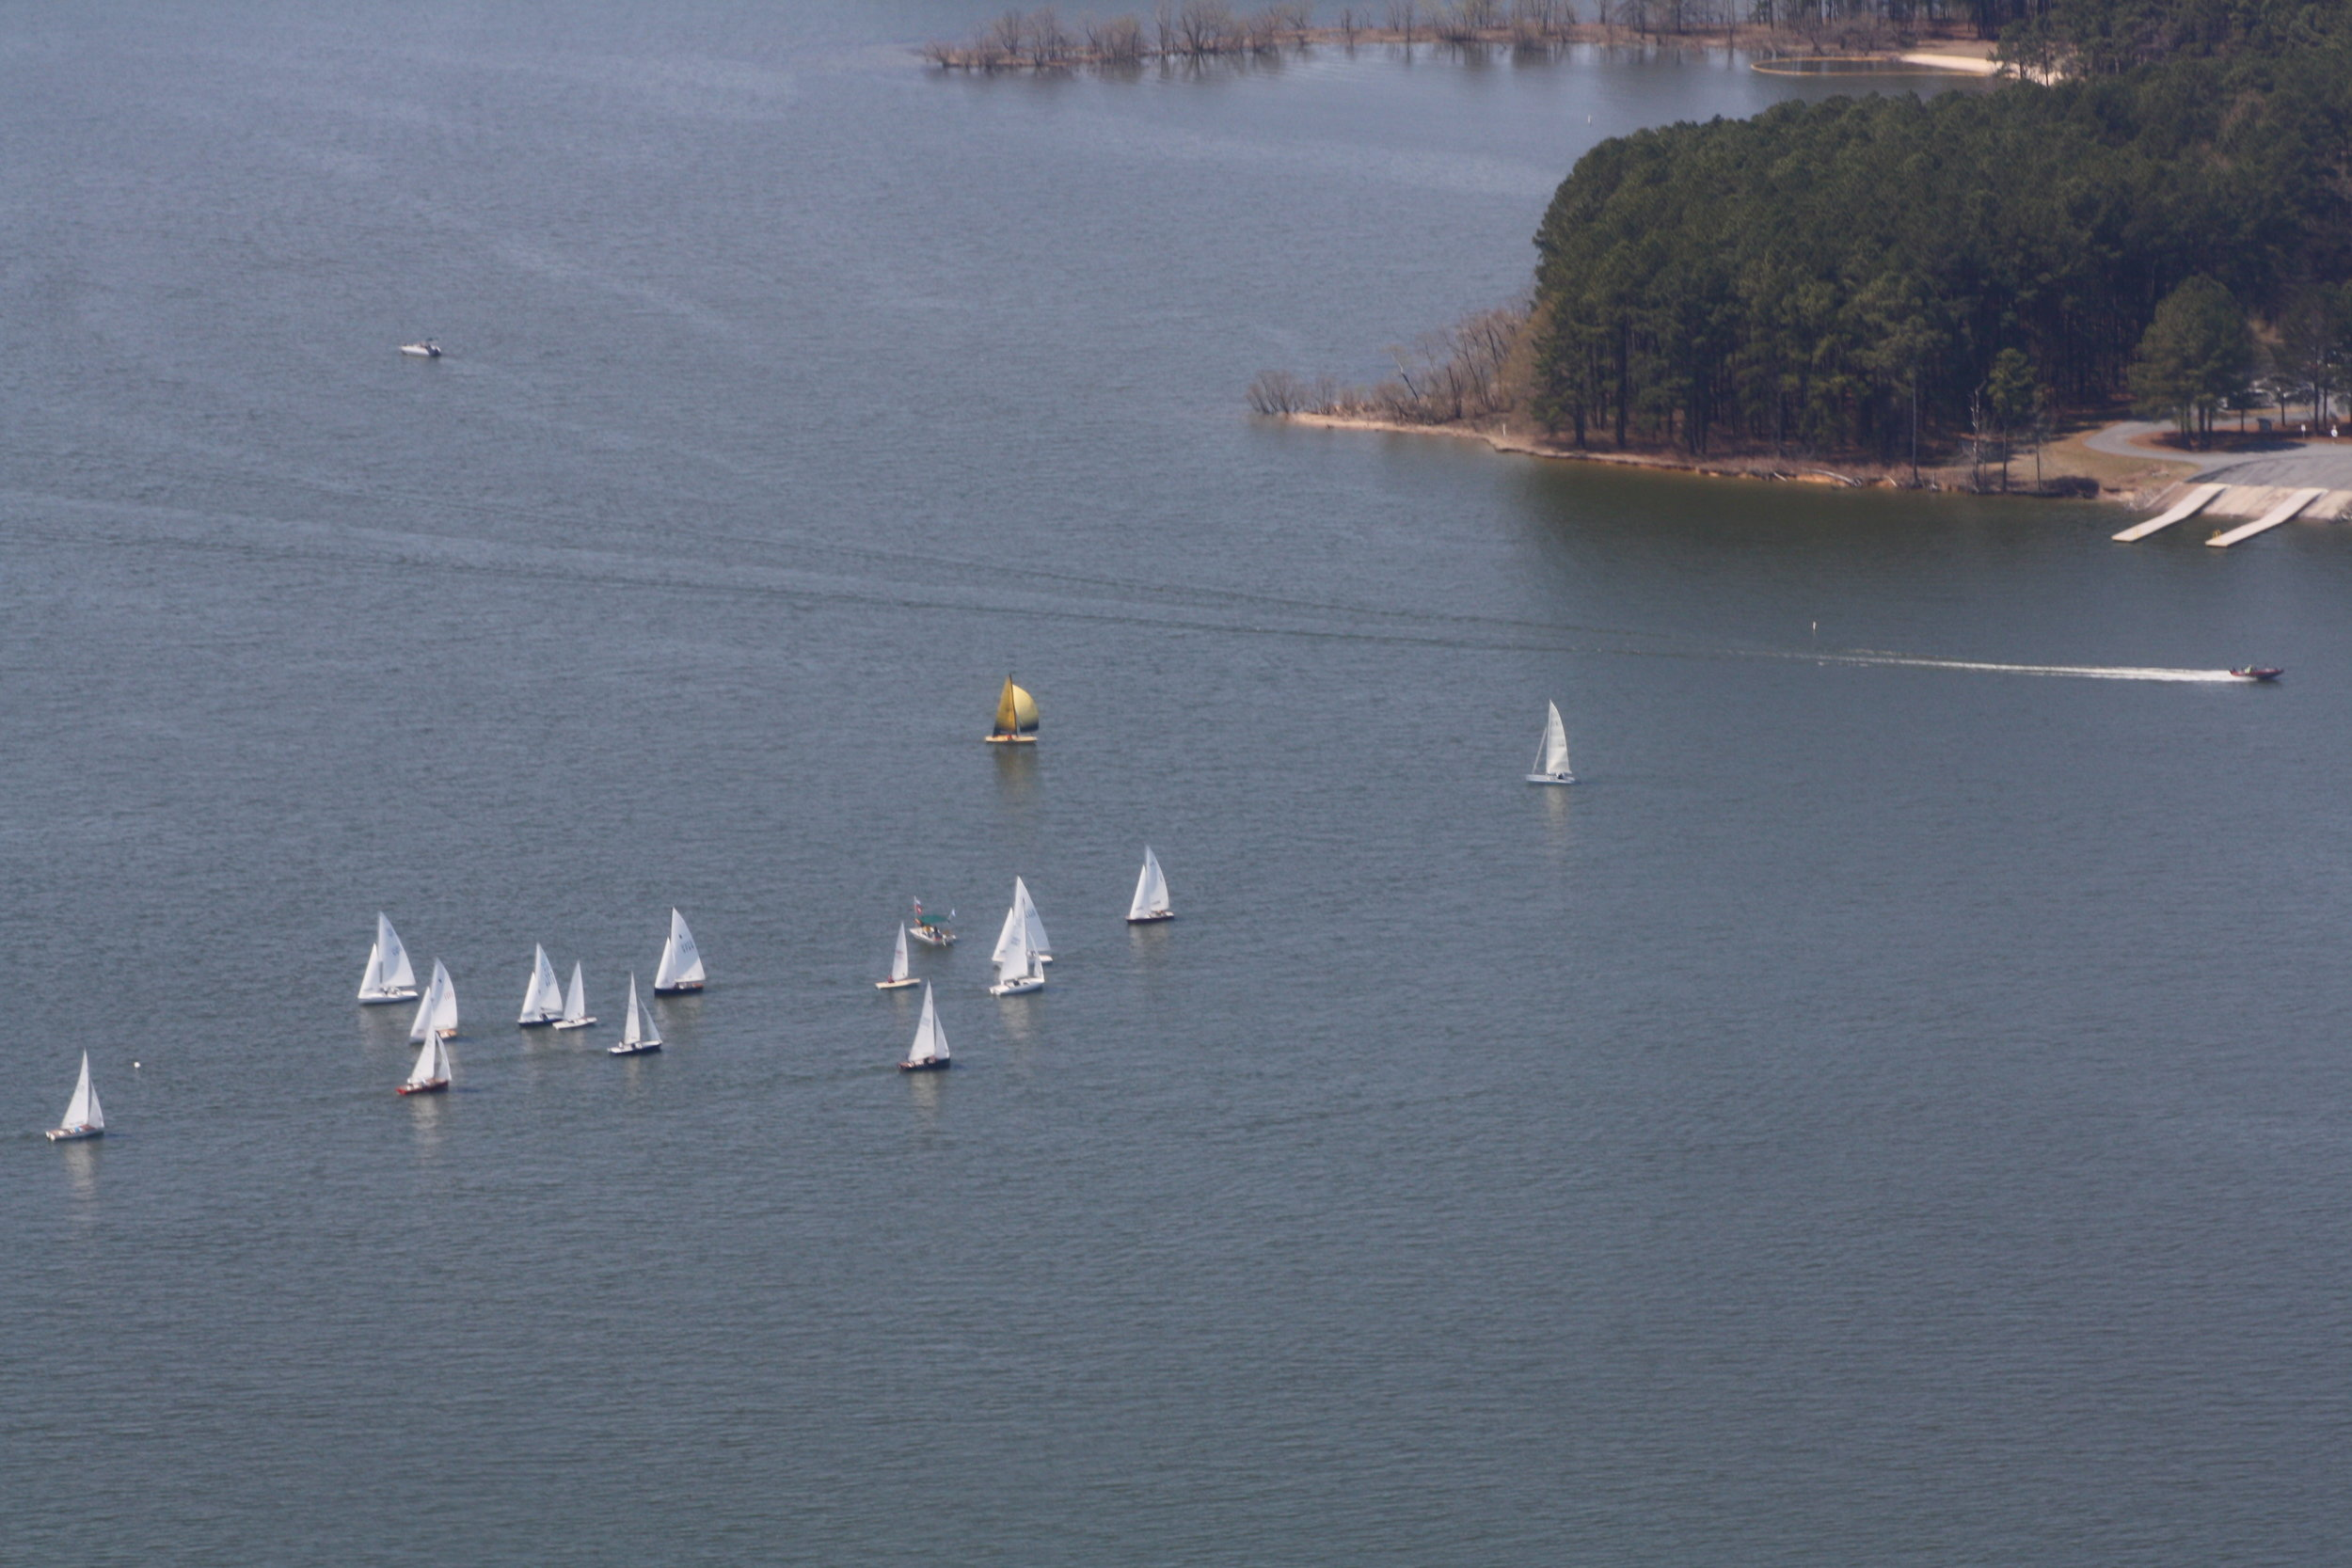 Sailboats on Jordan Lake, NC taken from a helicopter